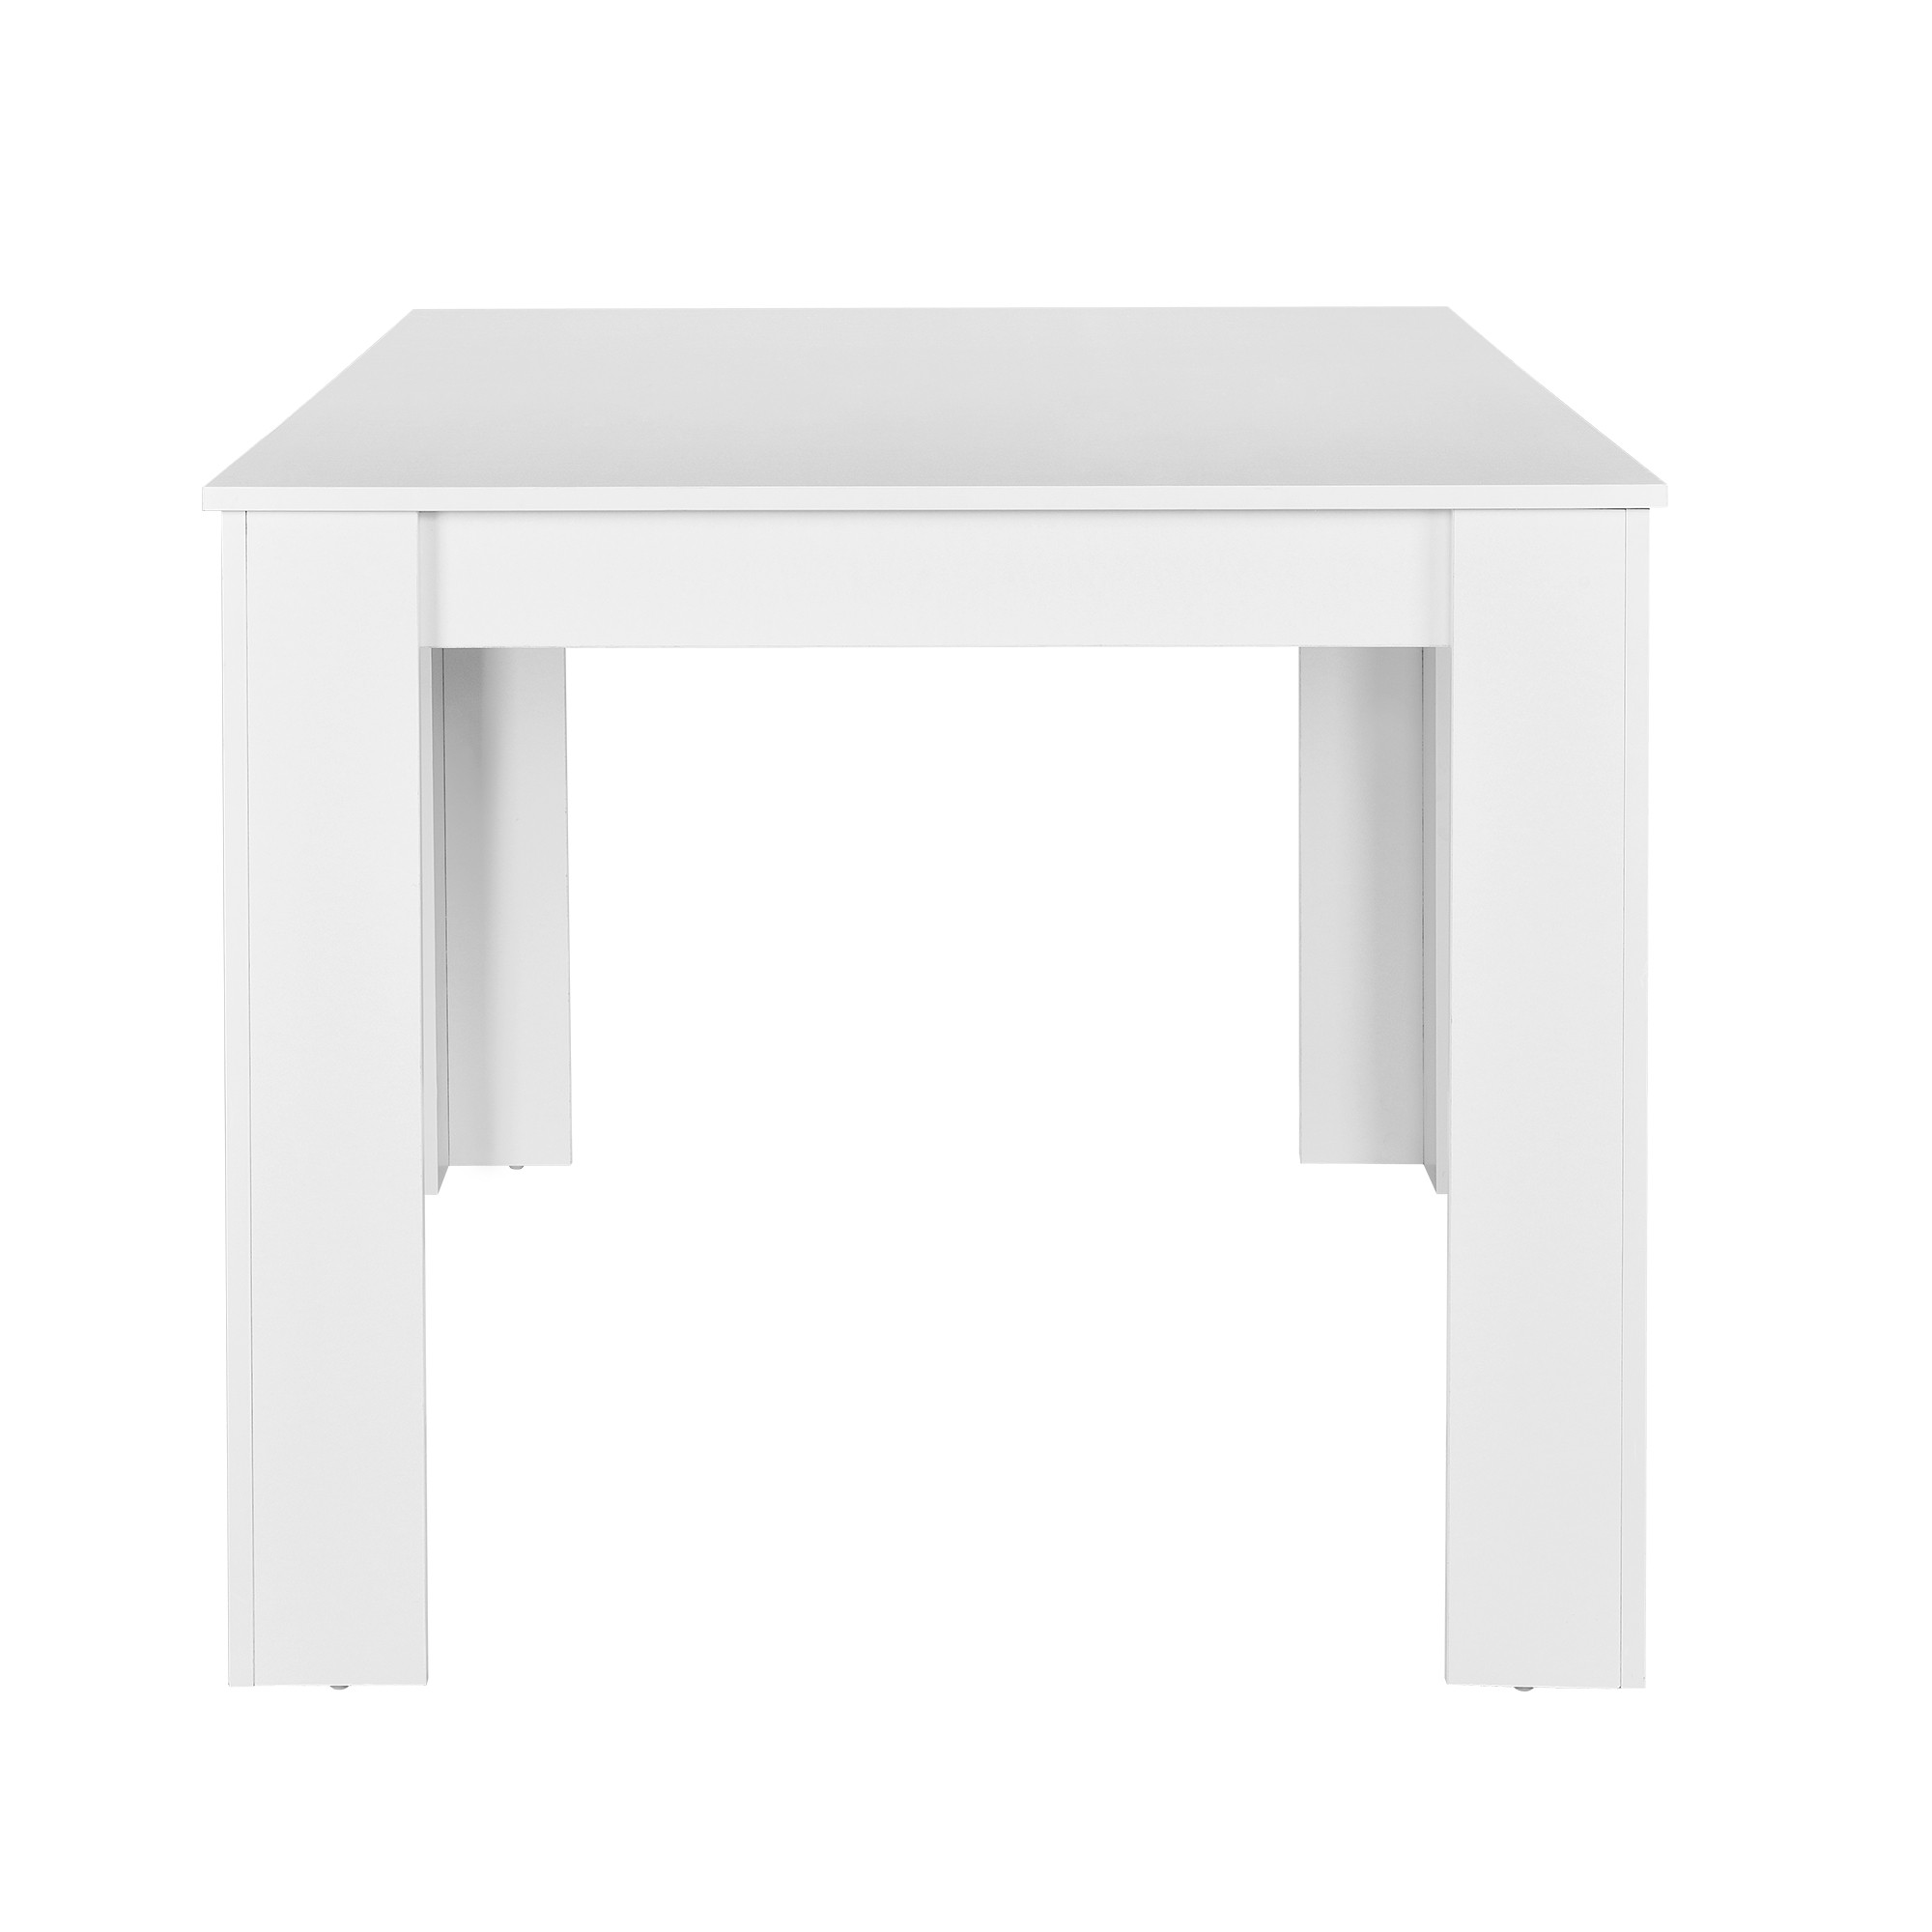 Table salle manger 140 x 90 cm en mdf blanc for Table de salle a manger 140 cm